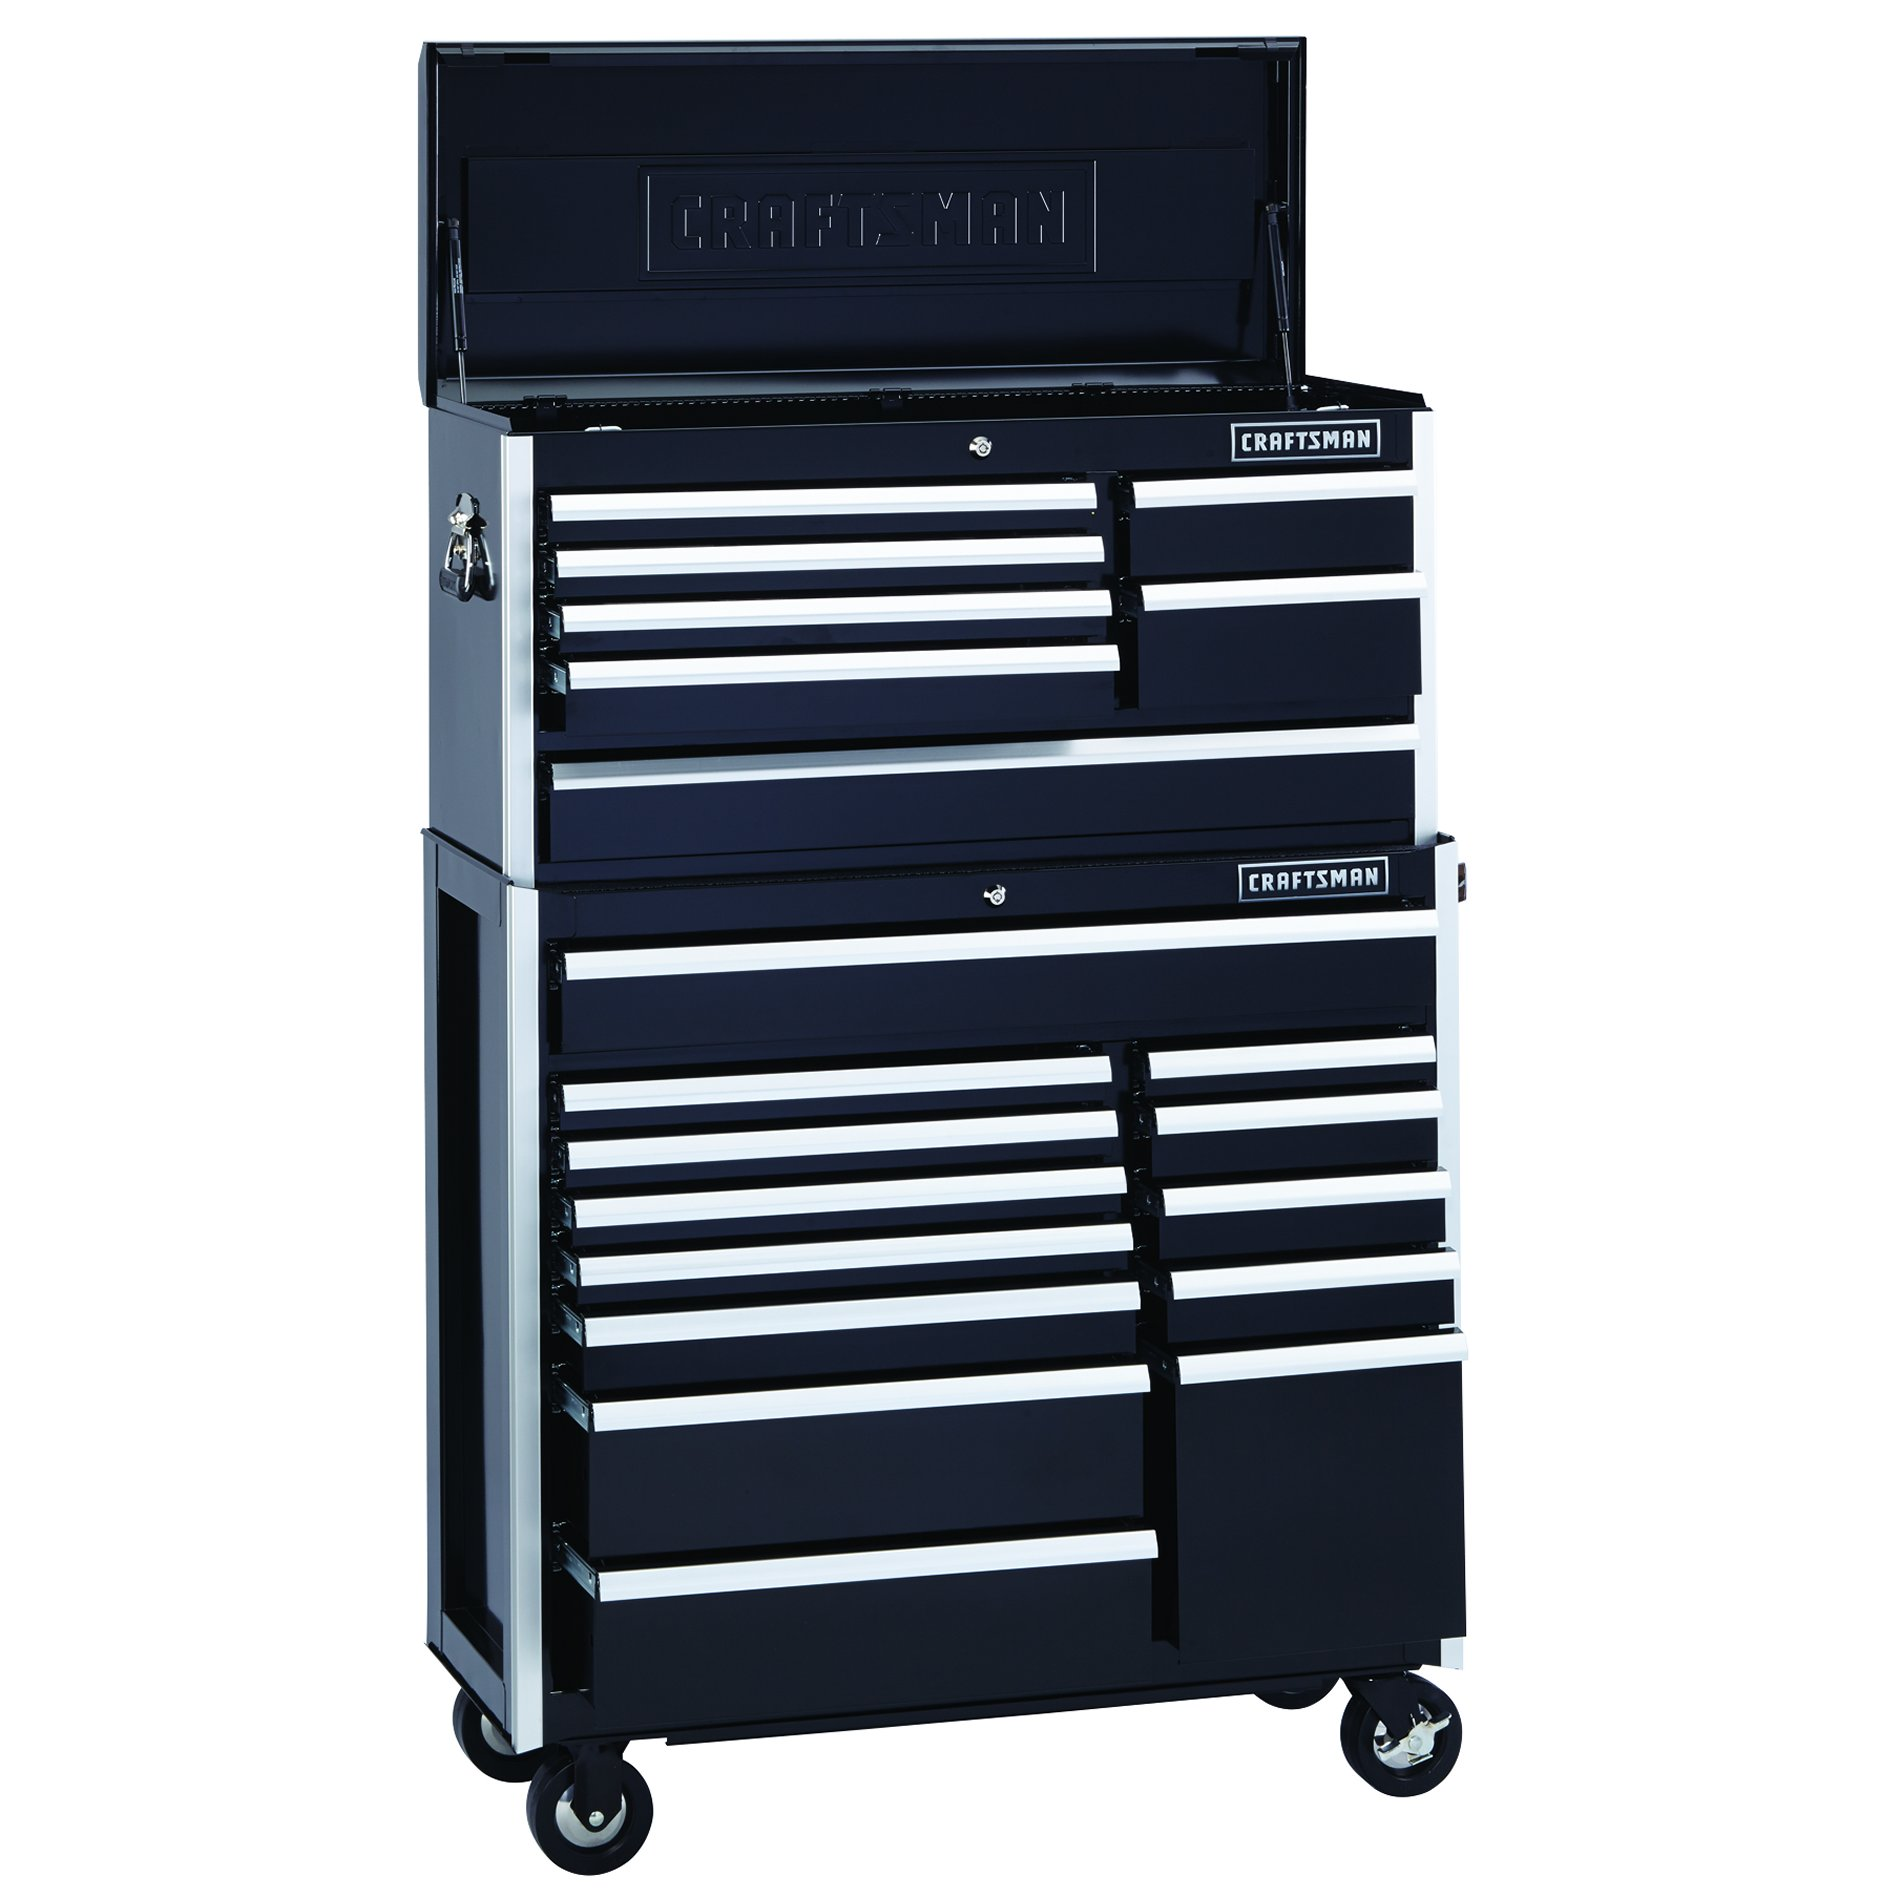 Craftsman EDGE Series 40 In. 13-Drawer Premium Heavy-Duty Ball-Bearing Rolling Cart - Black